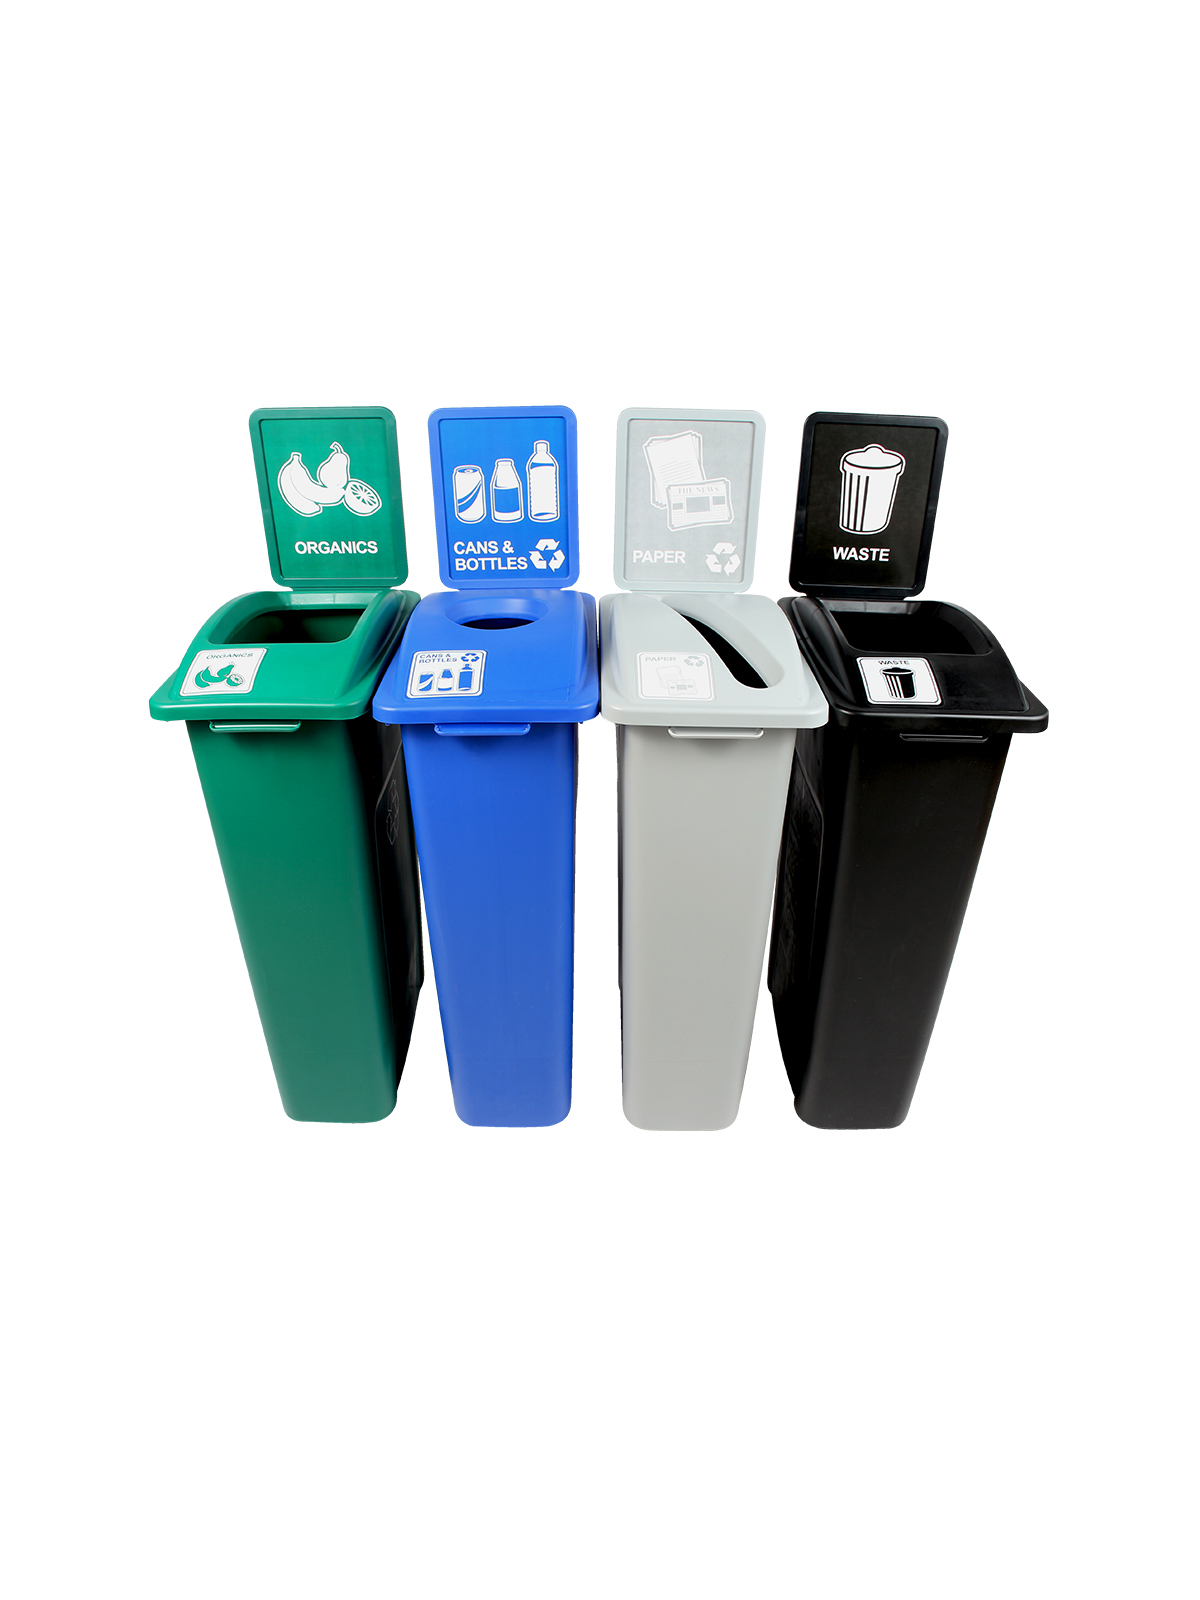 WASTE WATCHER - Quad - Cans & Bottles-Paper-Organics-Waste - Circle-Slot-Full - Blue-Grey-Green-Black